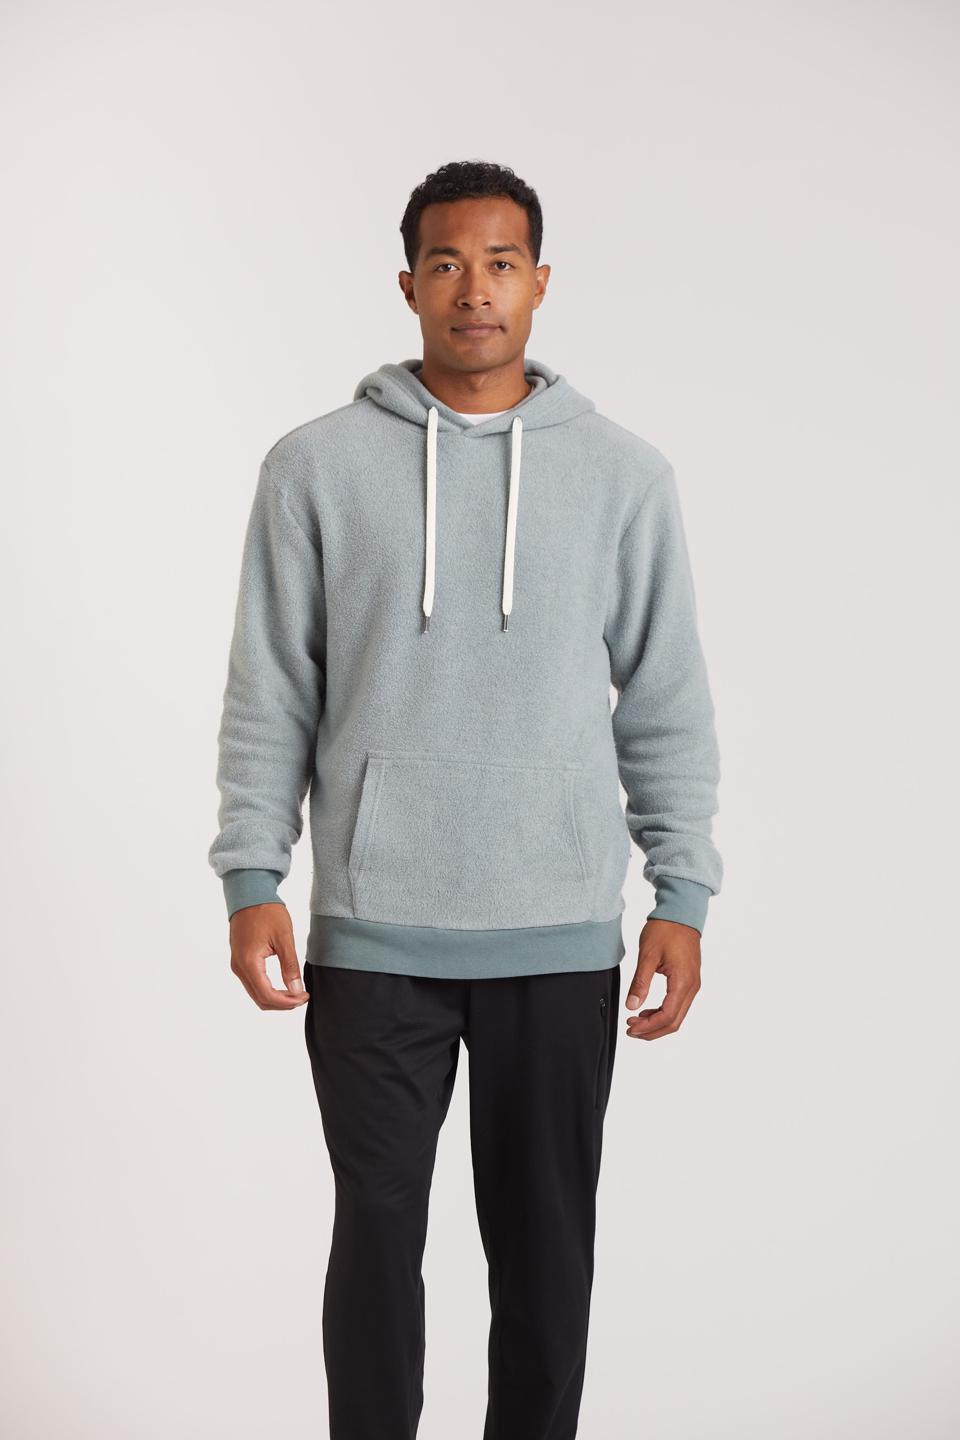 Feat's Blanketblend™ Seaglass Hoodie was inspired by their tie to the ocean. They wanted the perfect combination of green, blue and grey to mirror the place that inspires them the most. The perfect hoodie to throw on to warm up after a surf or stay cozy for an evening walk.